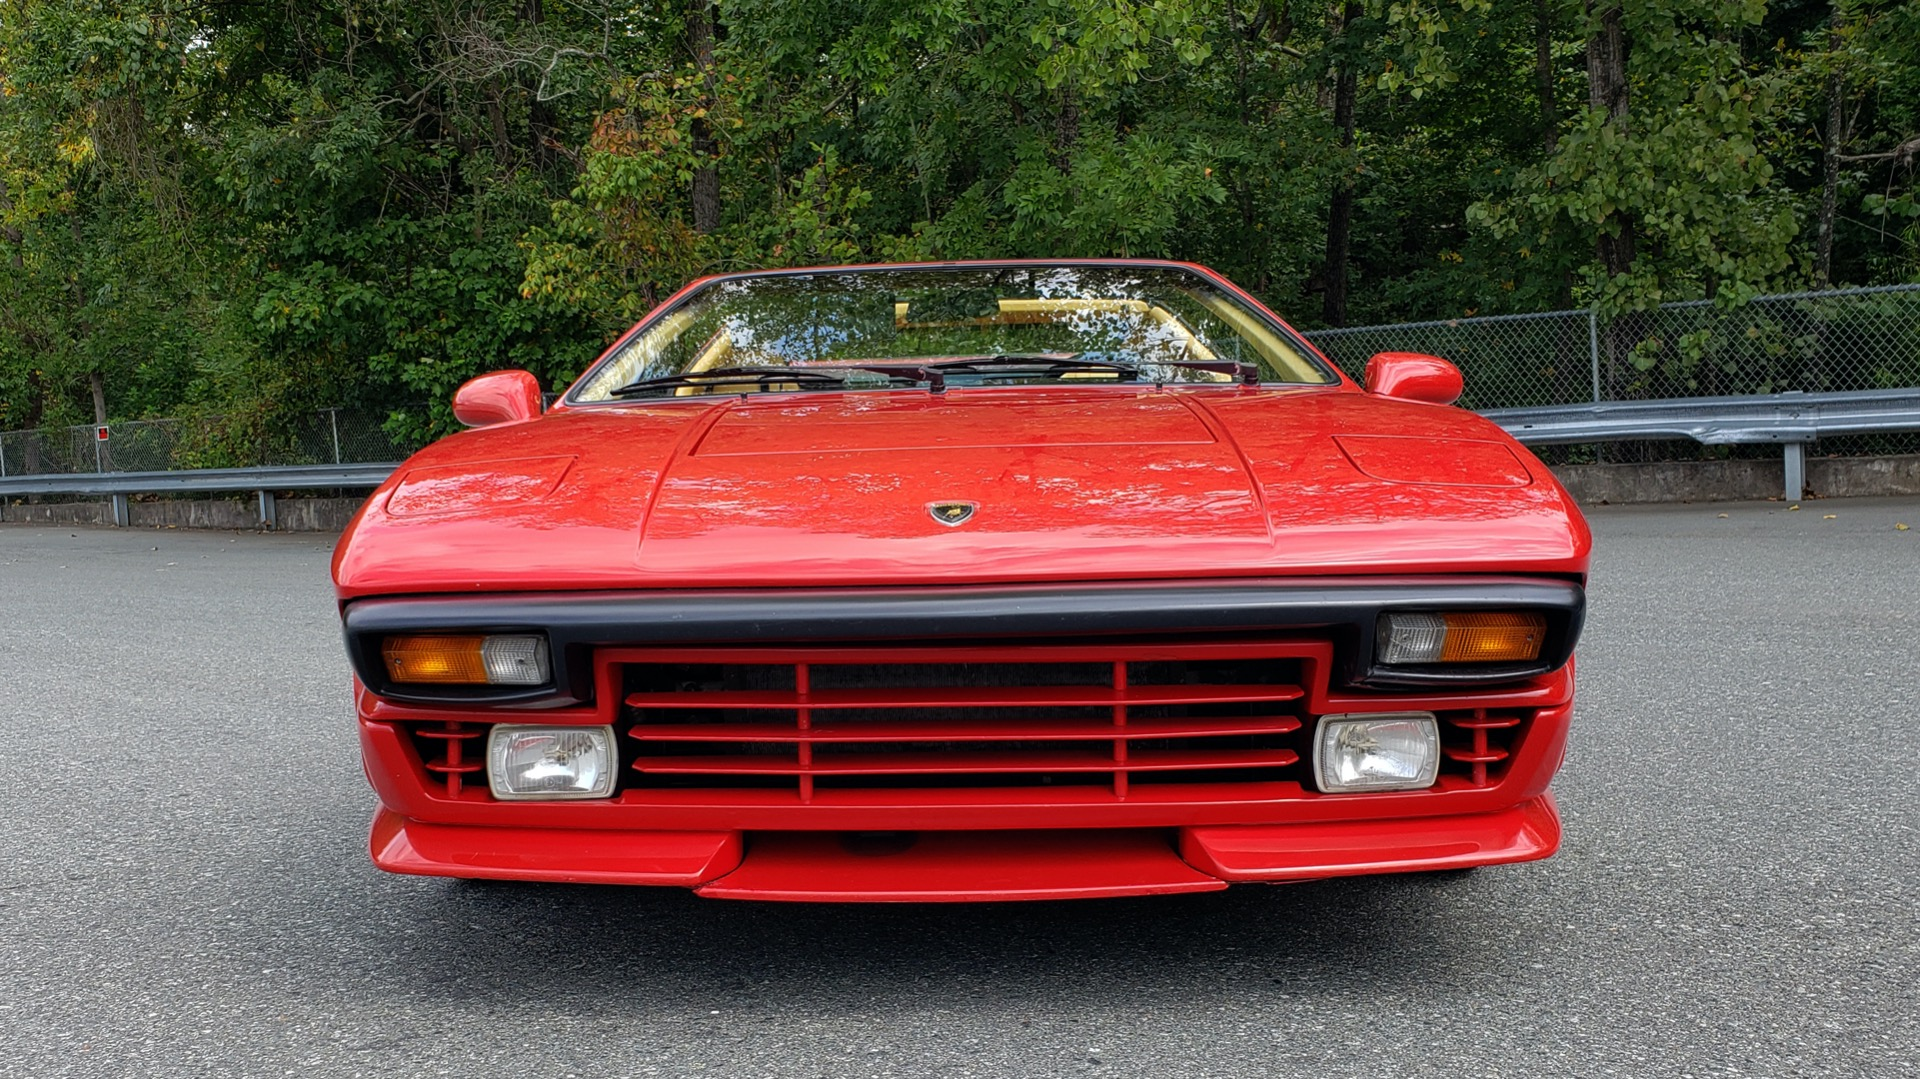 Used 1988 Lamborghini Jalpa 3.5 / 5-Speed Man / Low Miles / Excellent Condition for sale $108,995 at Formula Imports in Charlotte NC 28227 64